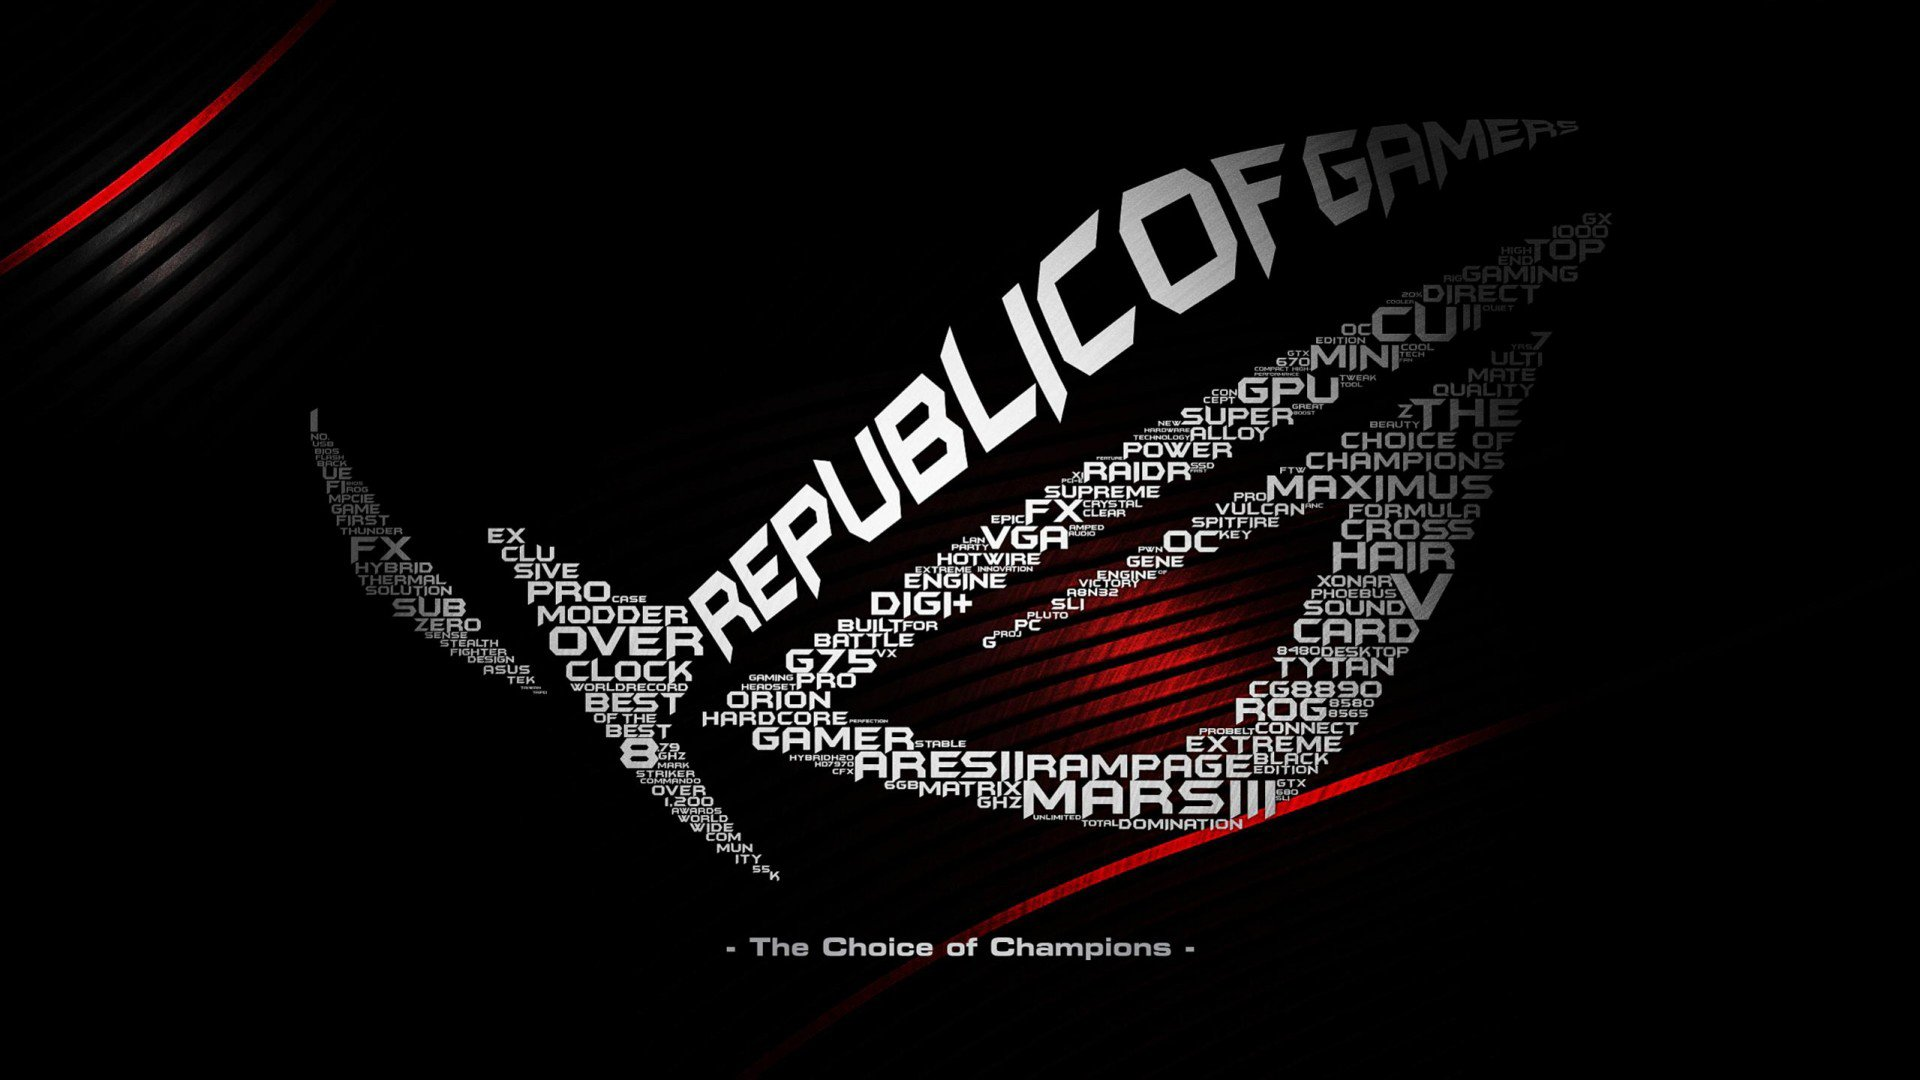 Asus computer rog gamer republic gaming wallpaper 1920x1080 asus computer rog gamer republic gaming wallpaper 1920x1080 660539 wallpaperup voltagebd Image collections